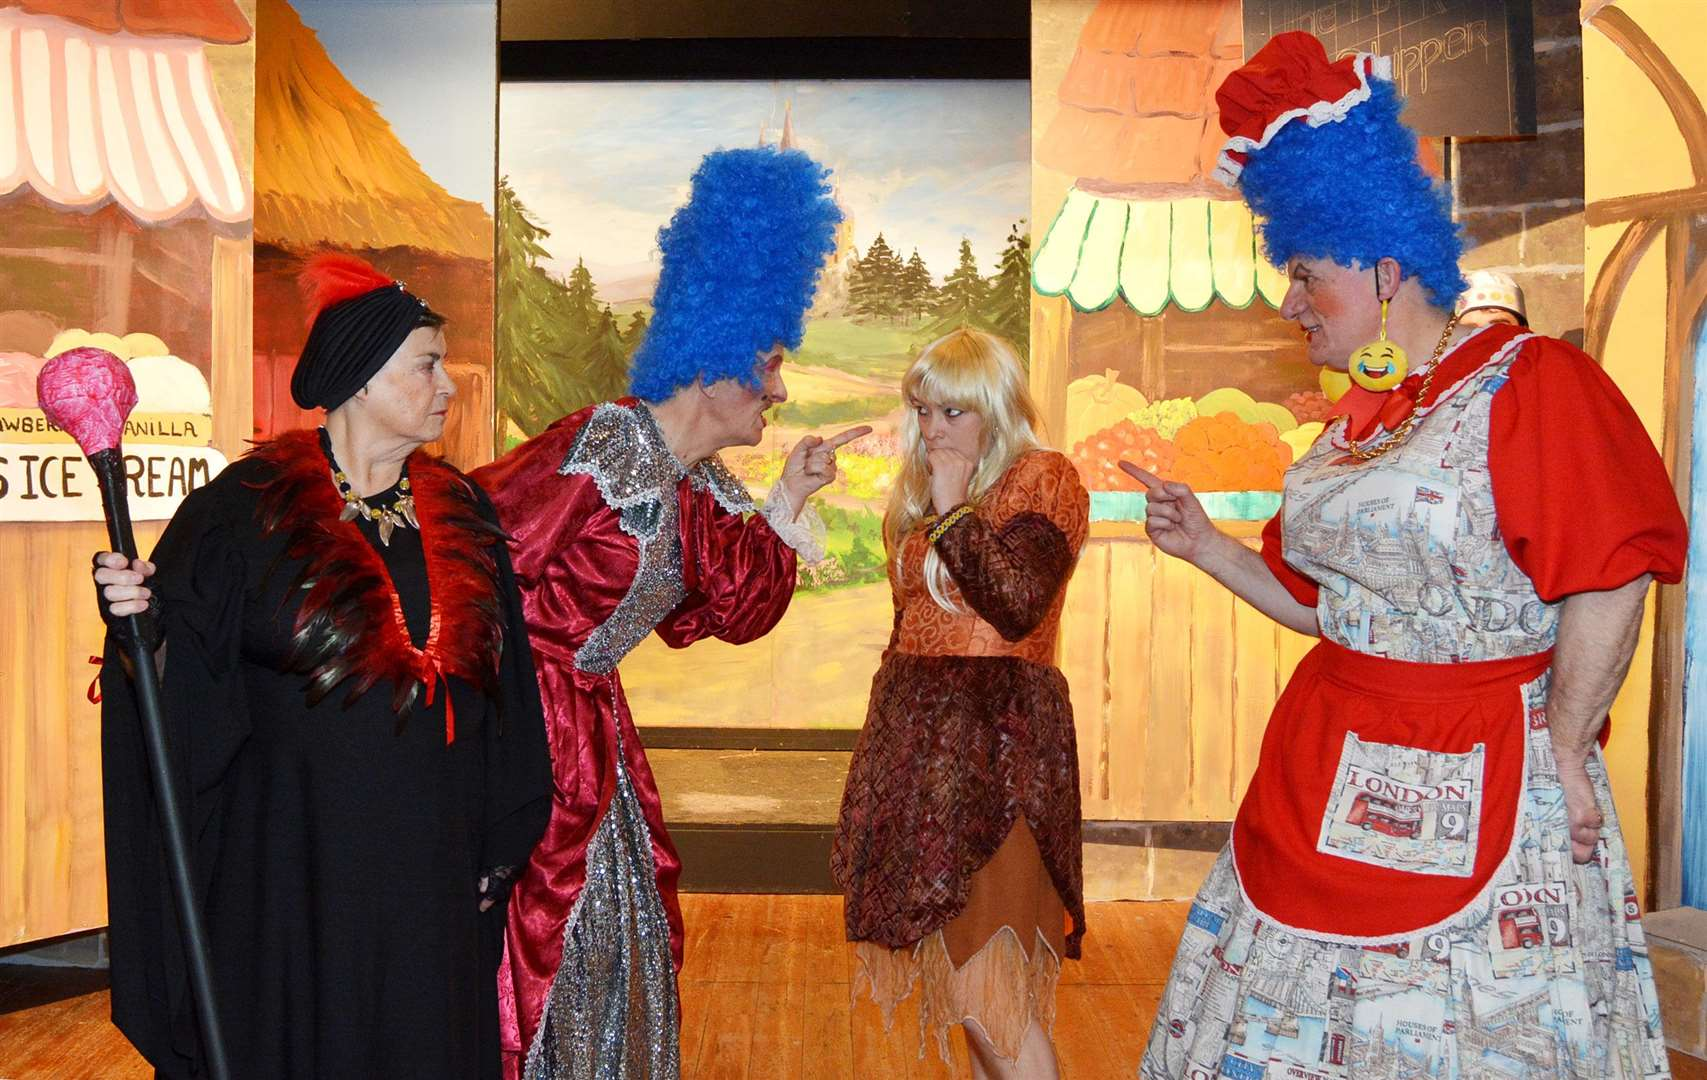 Evil Baroness Griselda (Joan Price) looks on as Ugly Sisters Richard Tree (Bella-Needs-a-Fella Hardup) and Robin Hawkes (Stella Artois Hardup) torment Mel Smyth (Cinderella) (Nccd0007) (6533078)